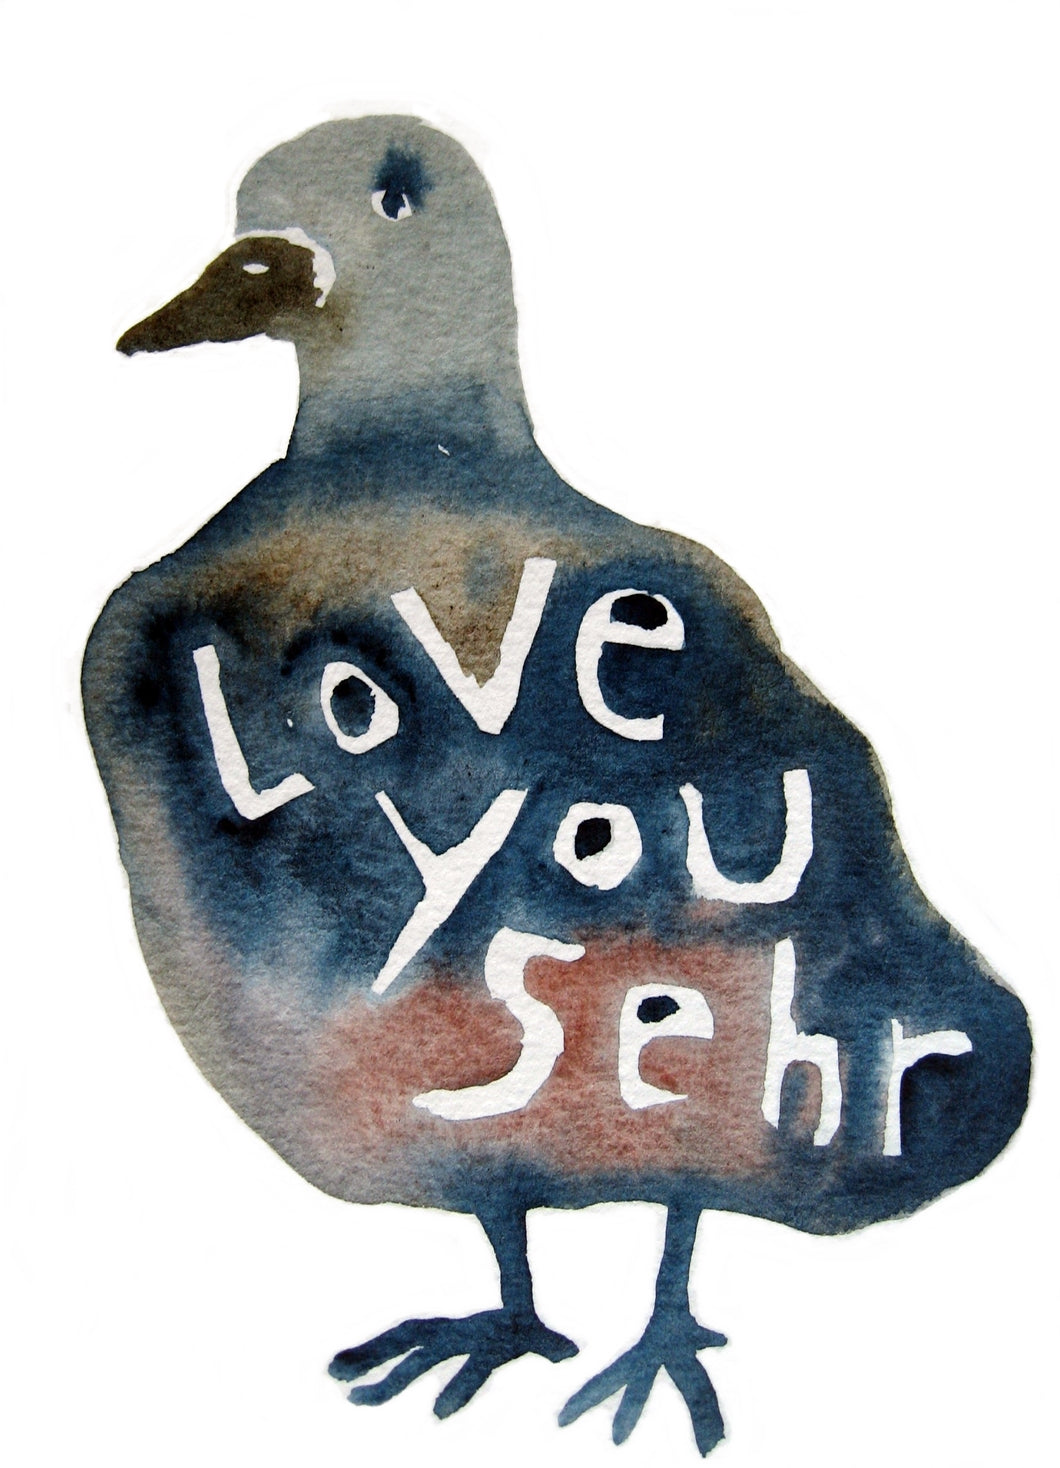 love you sehr print